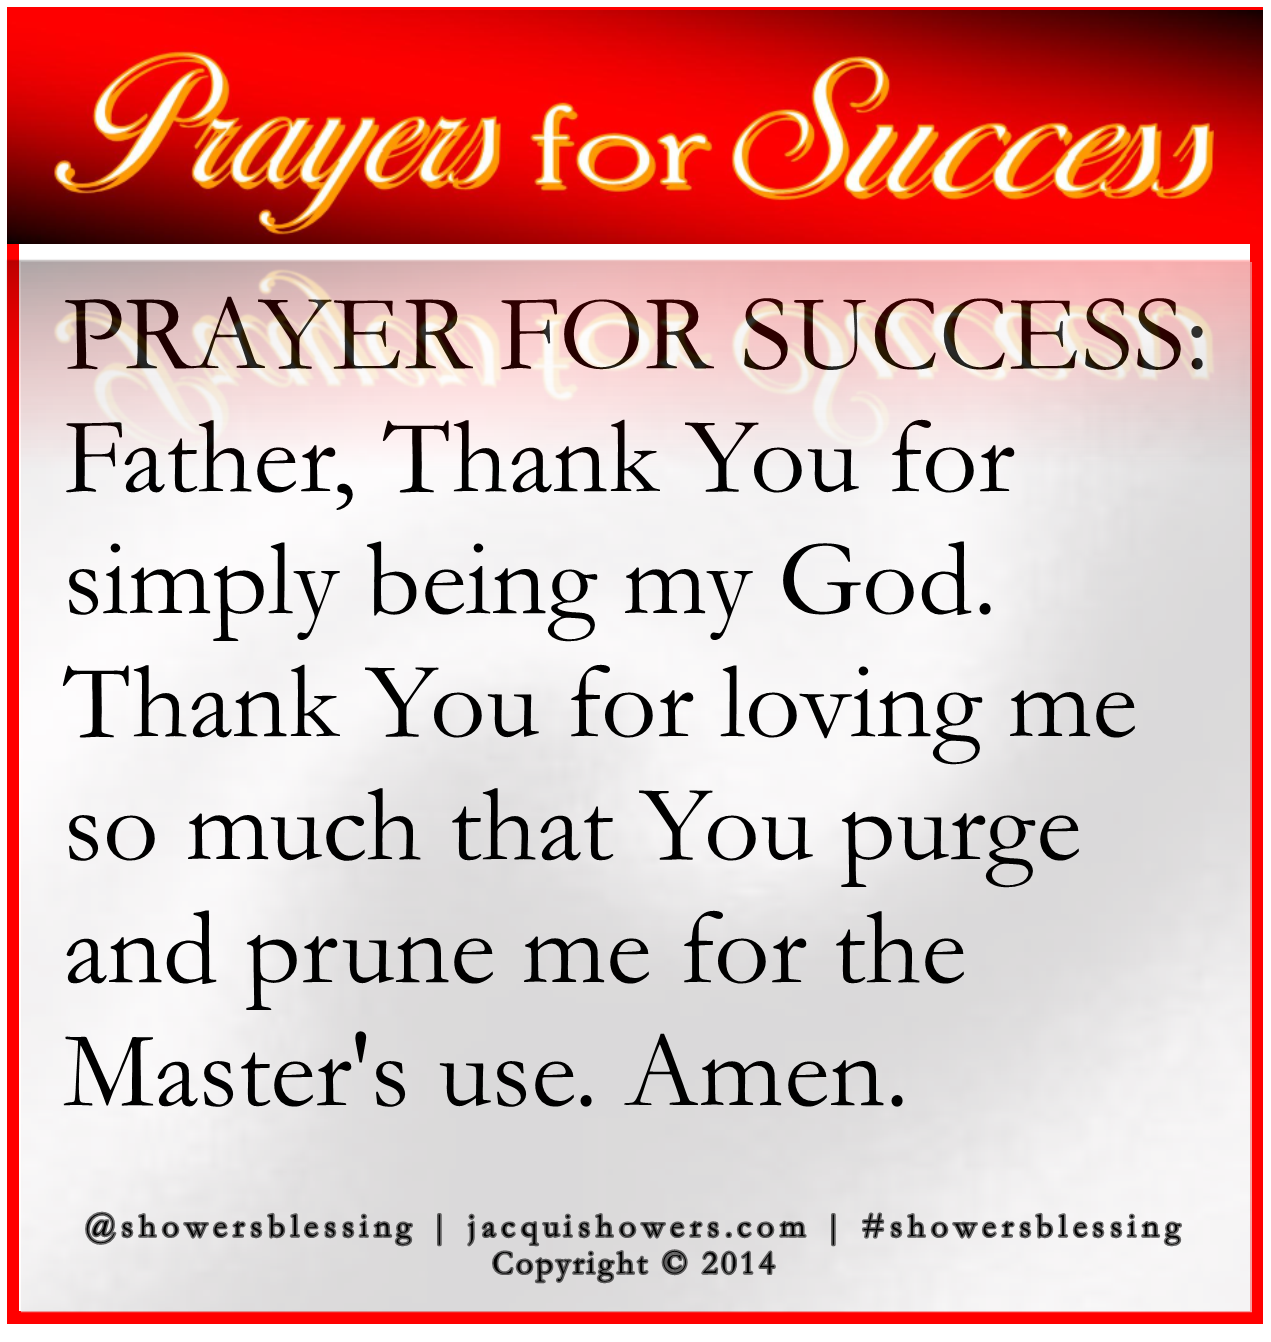 PRAYER FOR SUCCESS Oct 21 | The POWER in PRAYER is SUCCESS